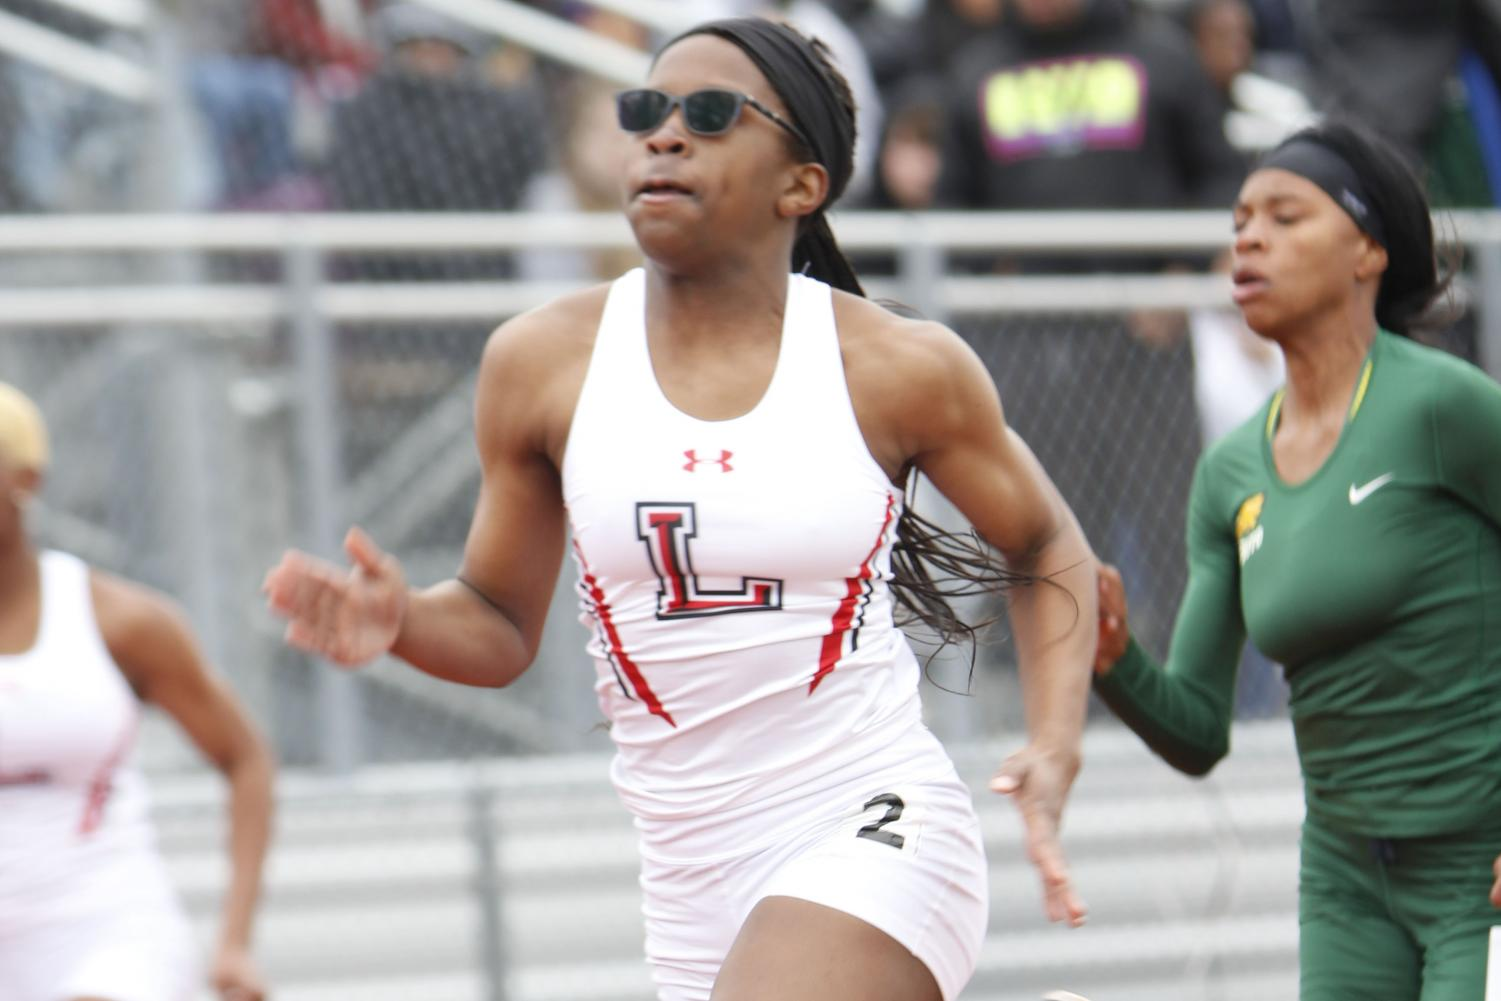 Christine Mallard, 10, competes at track meet in 2018-19 season.